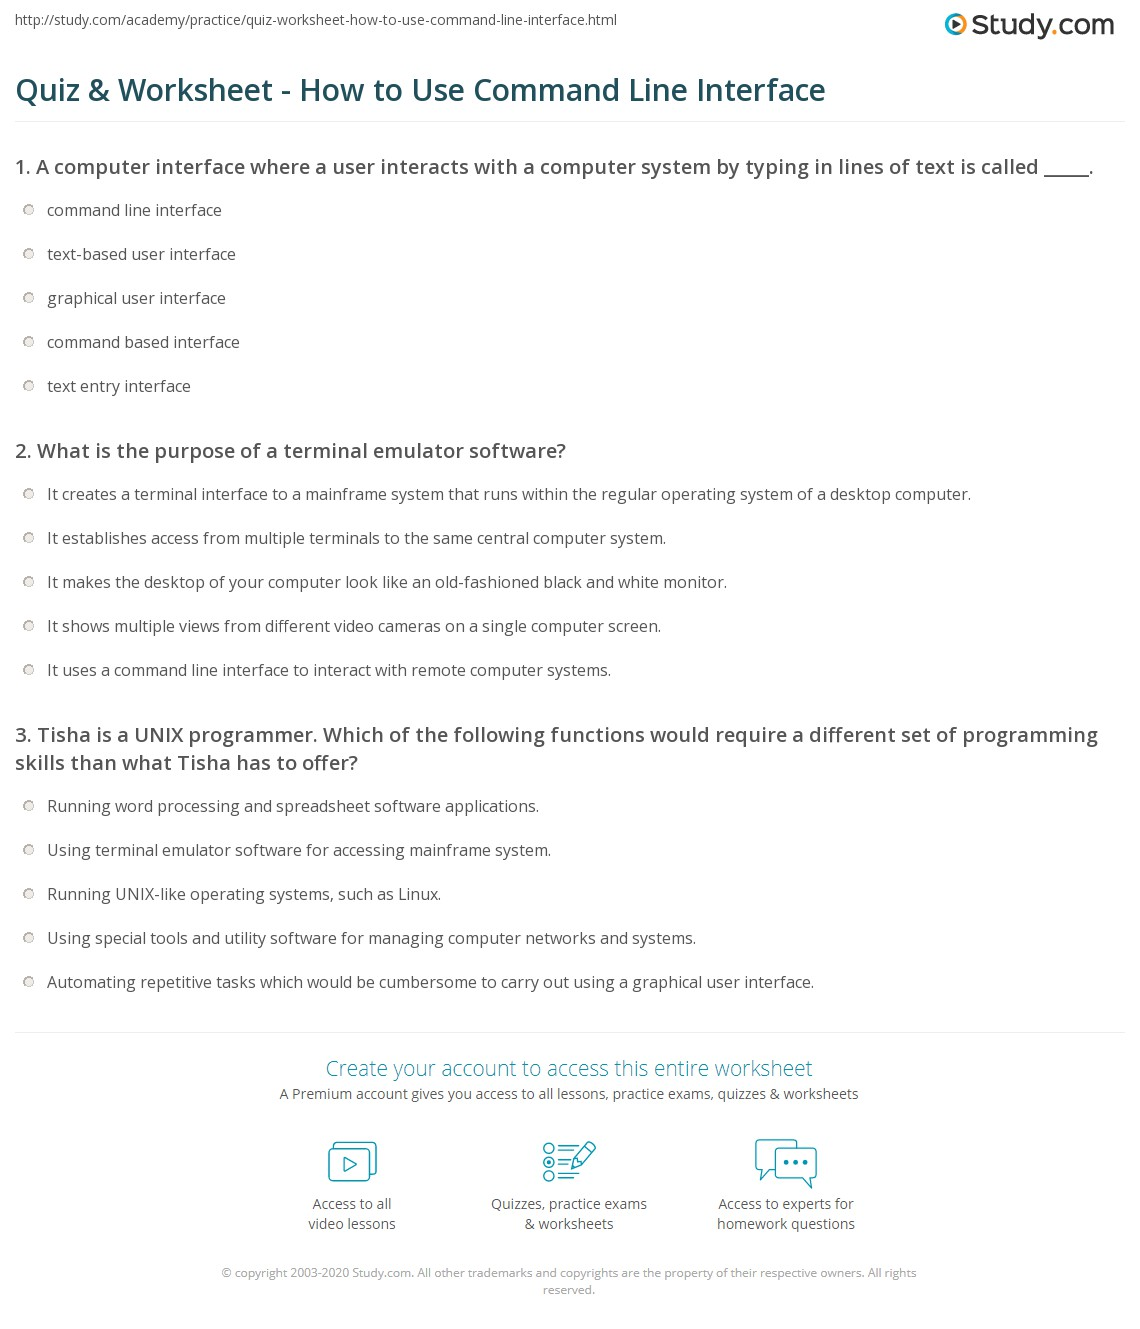 Quiz & Worksheet - How to Use Command Line Interface   Study com